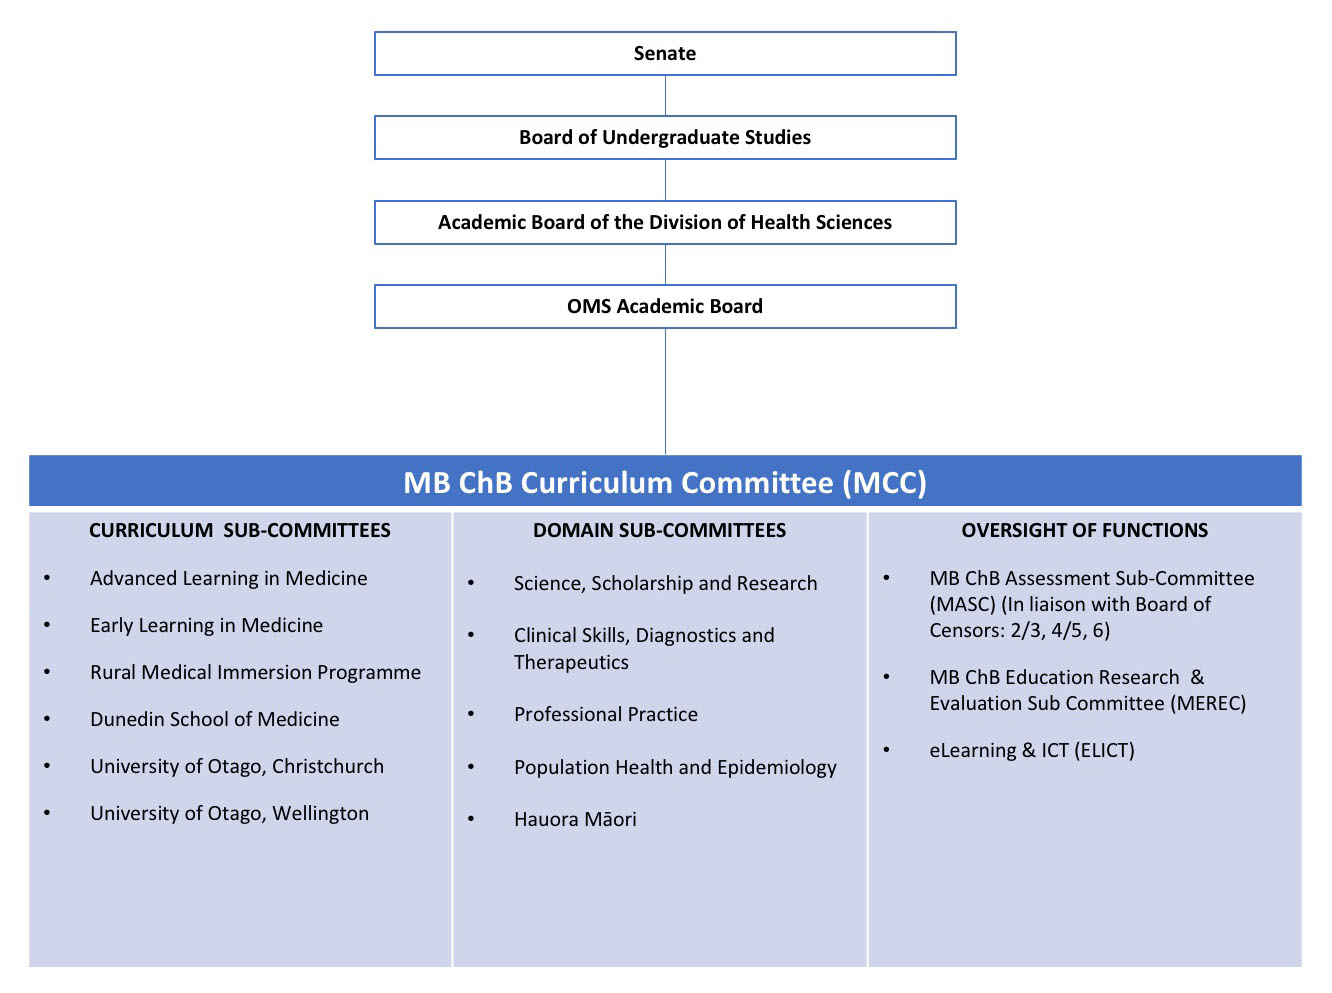 MBChB MCC structure